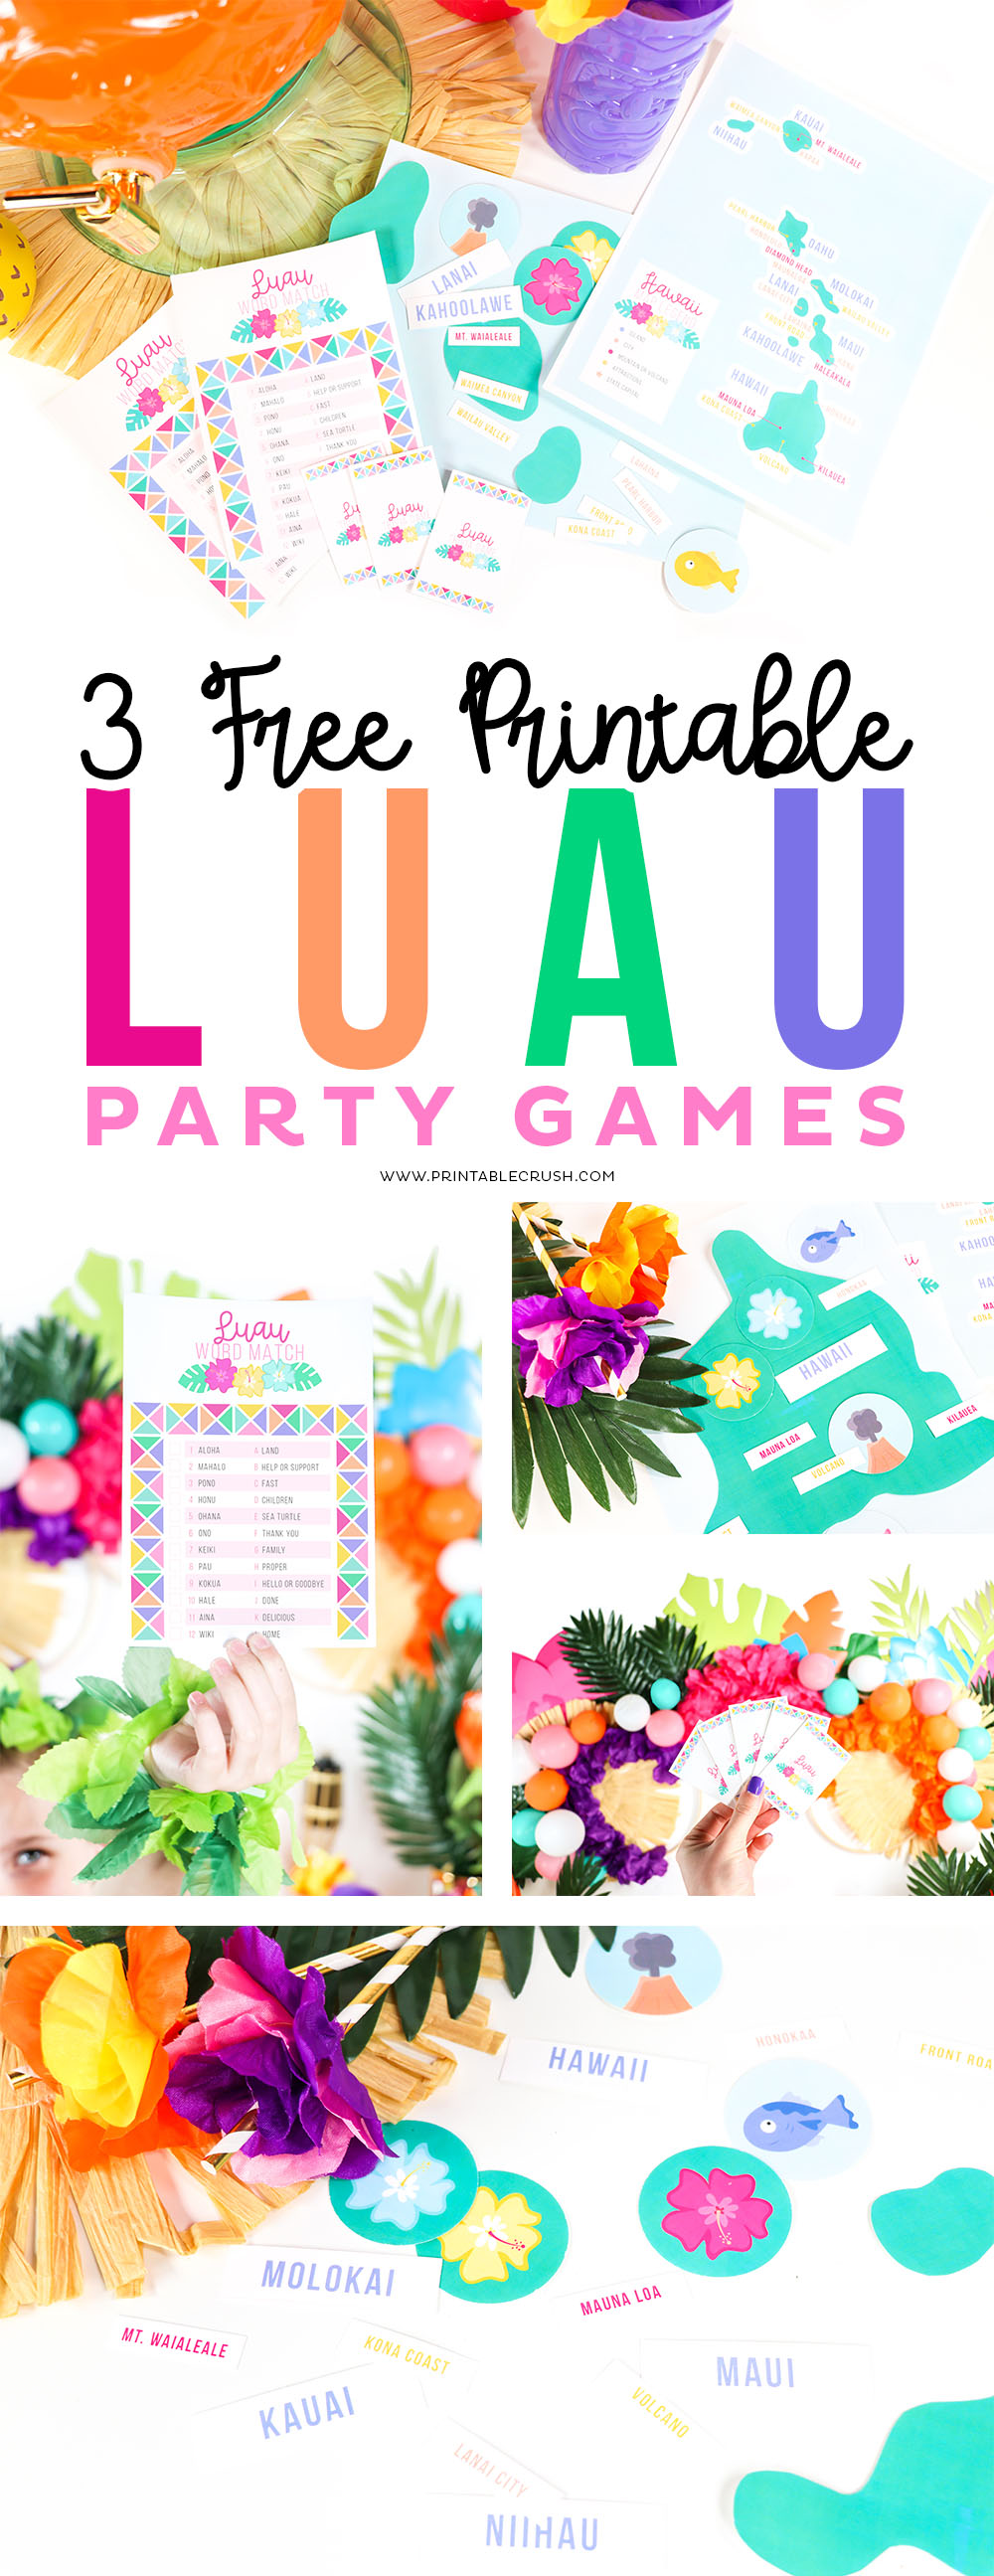 These FREE Printable Luau Party Games are perfect for the summer luau party. Such a fun way to keep the kids entertained! #freeprintable #printablepartygames #partygames #freepartygames #printablecrush #luaupartygames #luaugames #hawaiimap #gamesforkids #partygamesforkids via @printablecrush